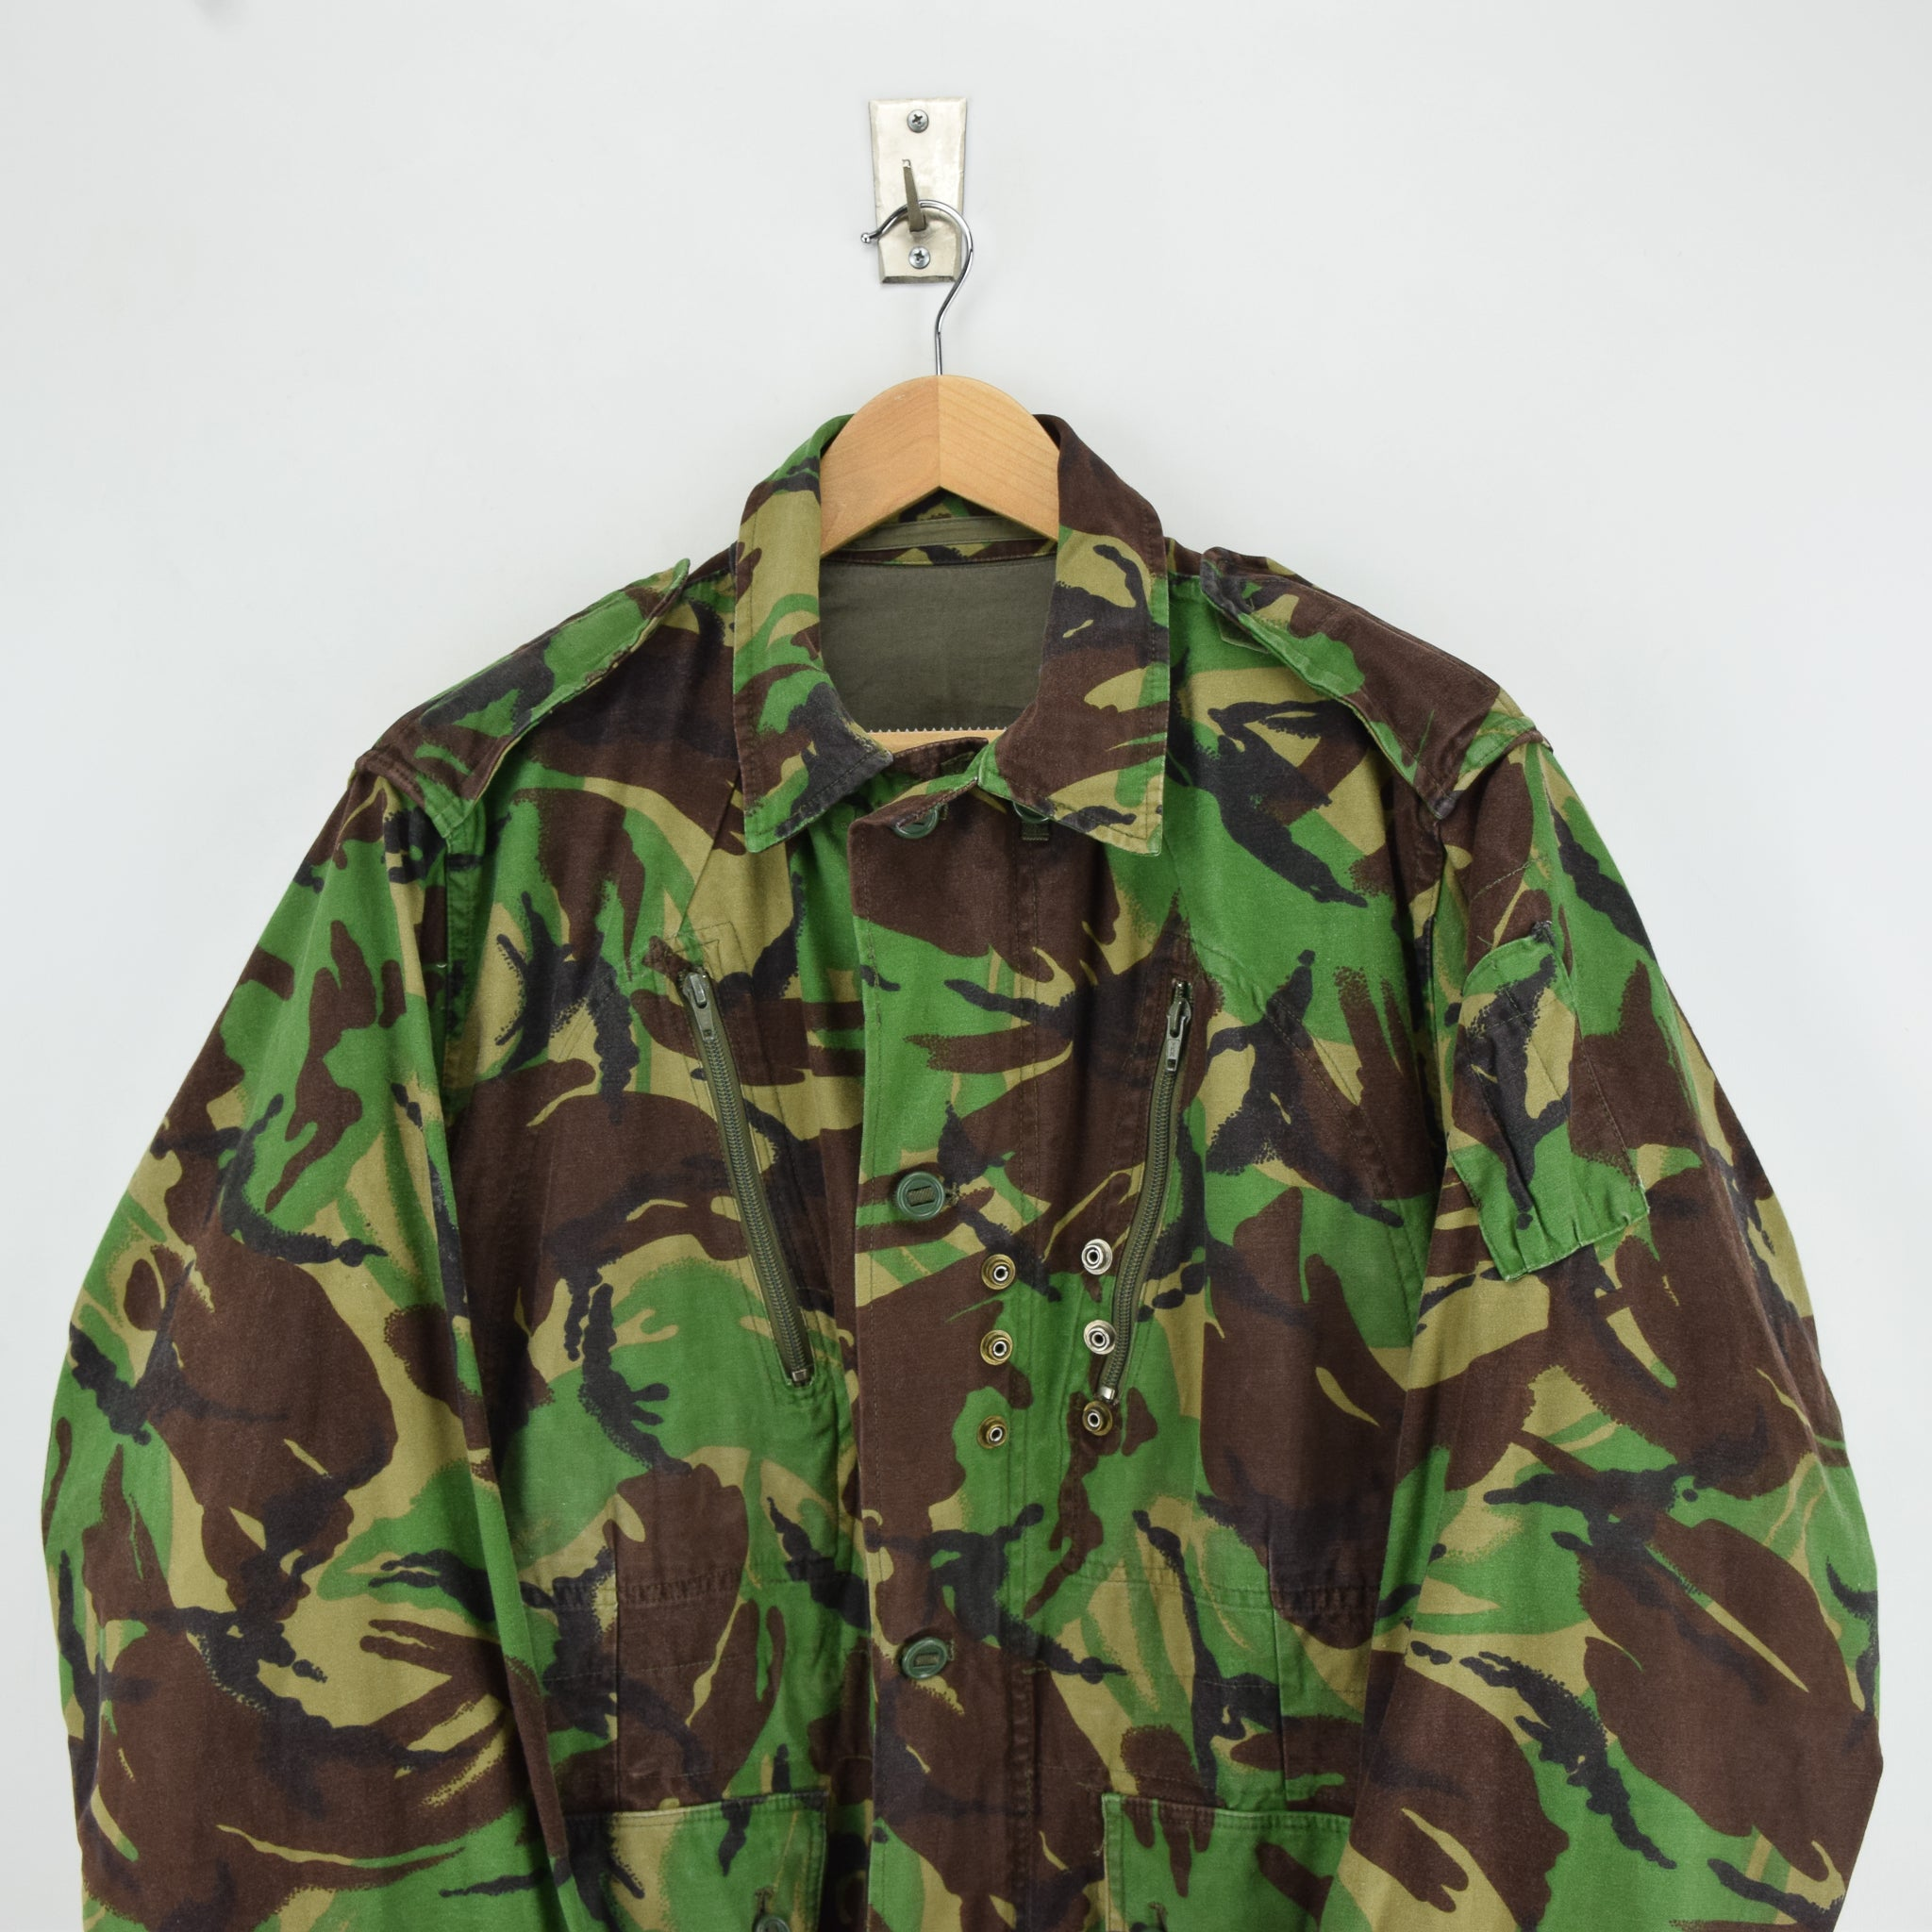 Vintage 80s British Aircrew RAF Combat Temperate MK 2 Camo Jacket M / L chest